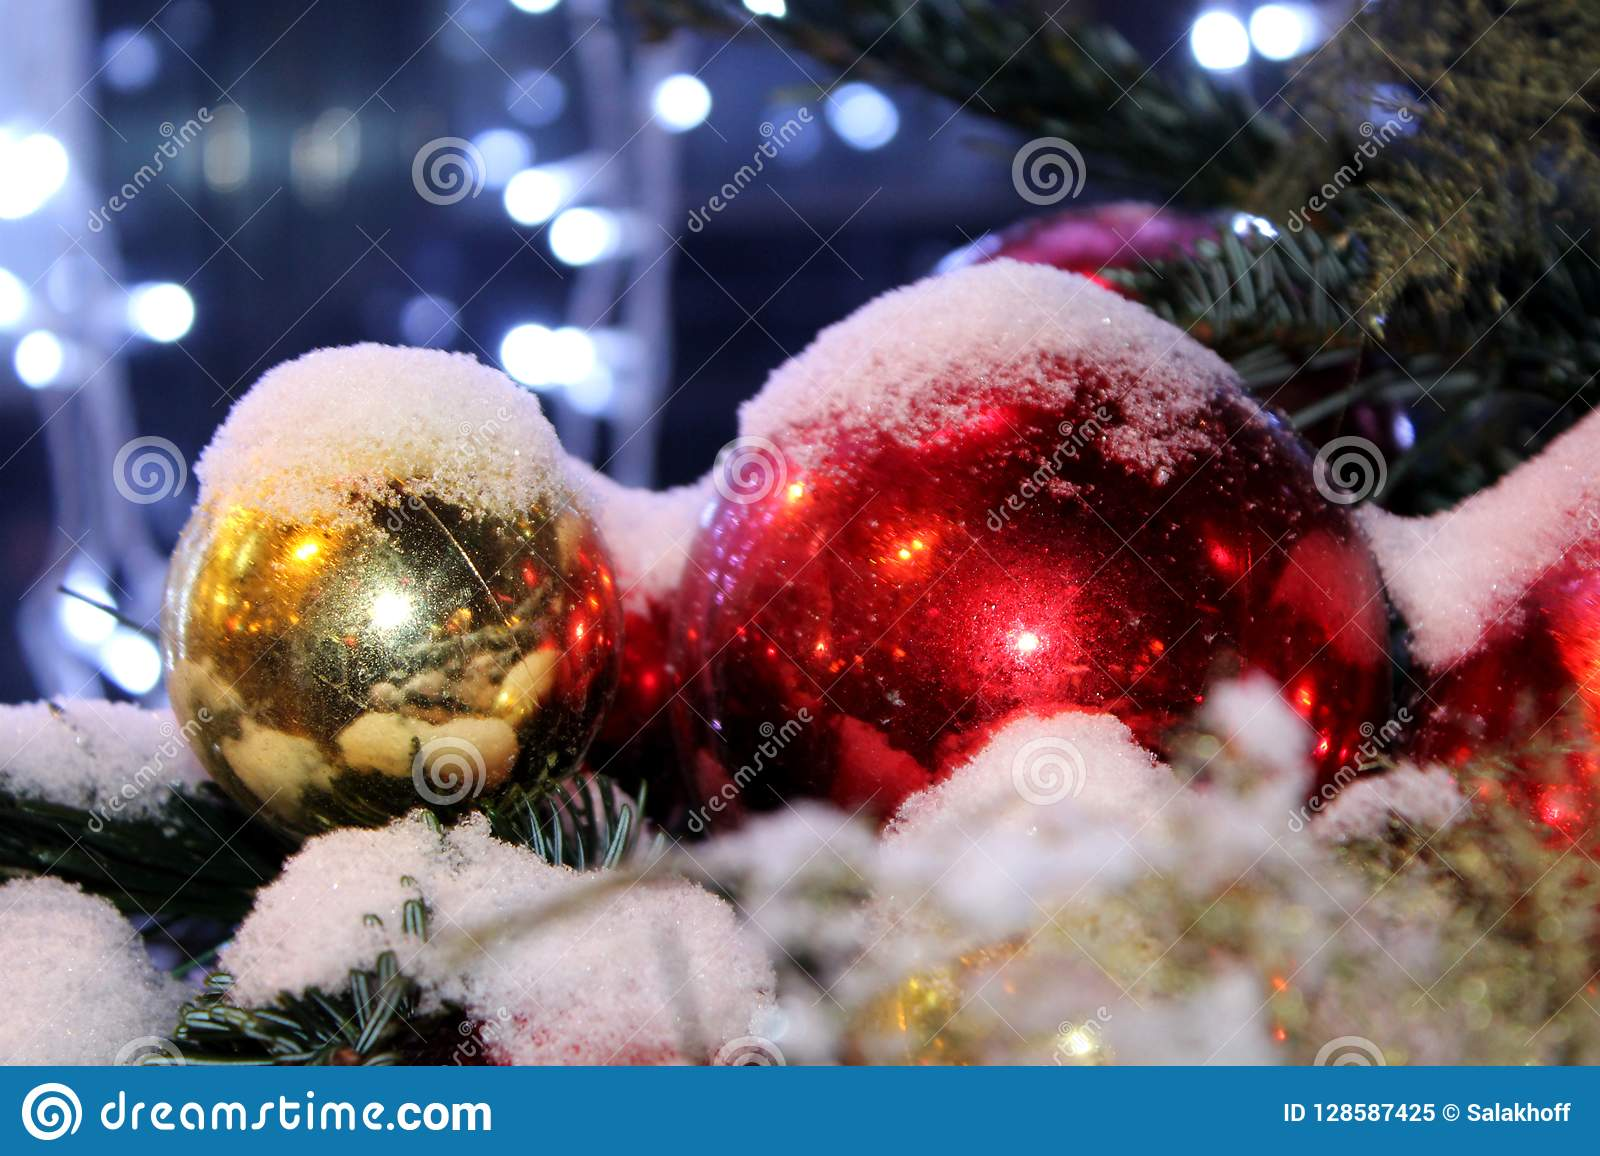 Christmas decorations on the Christmas tree in red and gold colors strewn with lights, close-up.